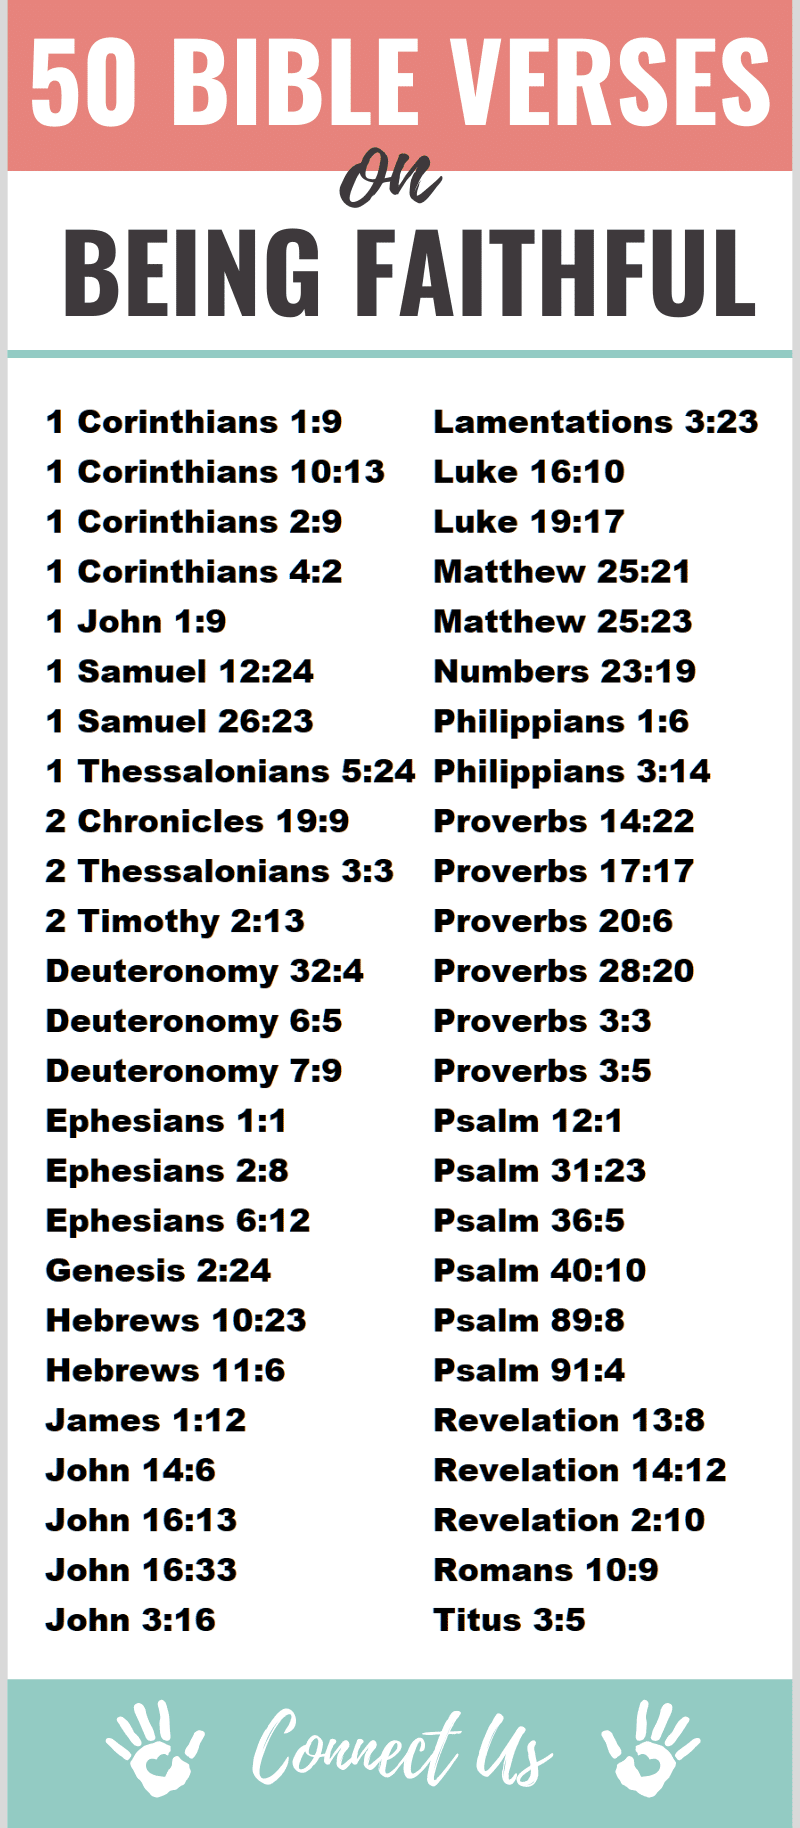 Bible Verses on Being Faithful